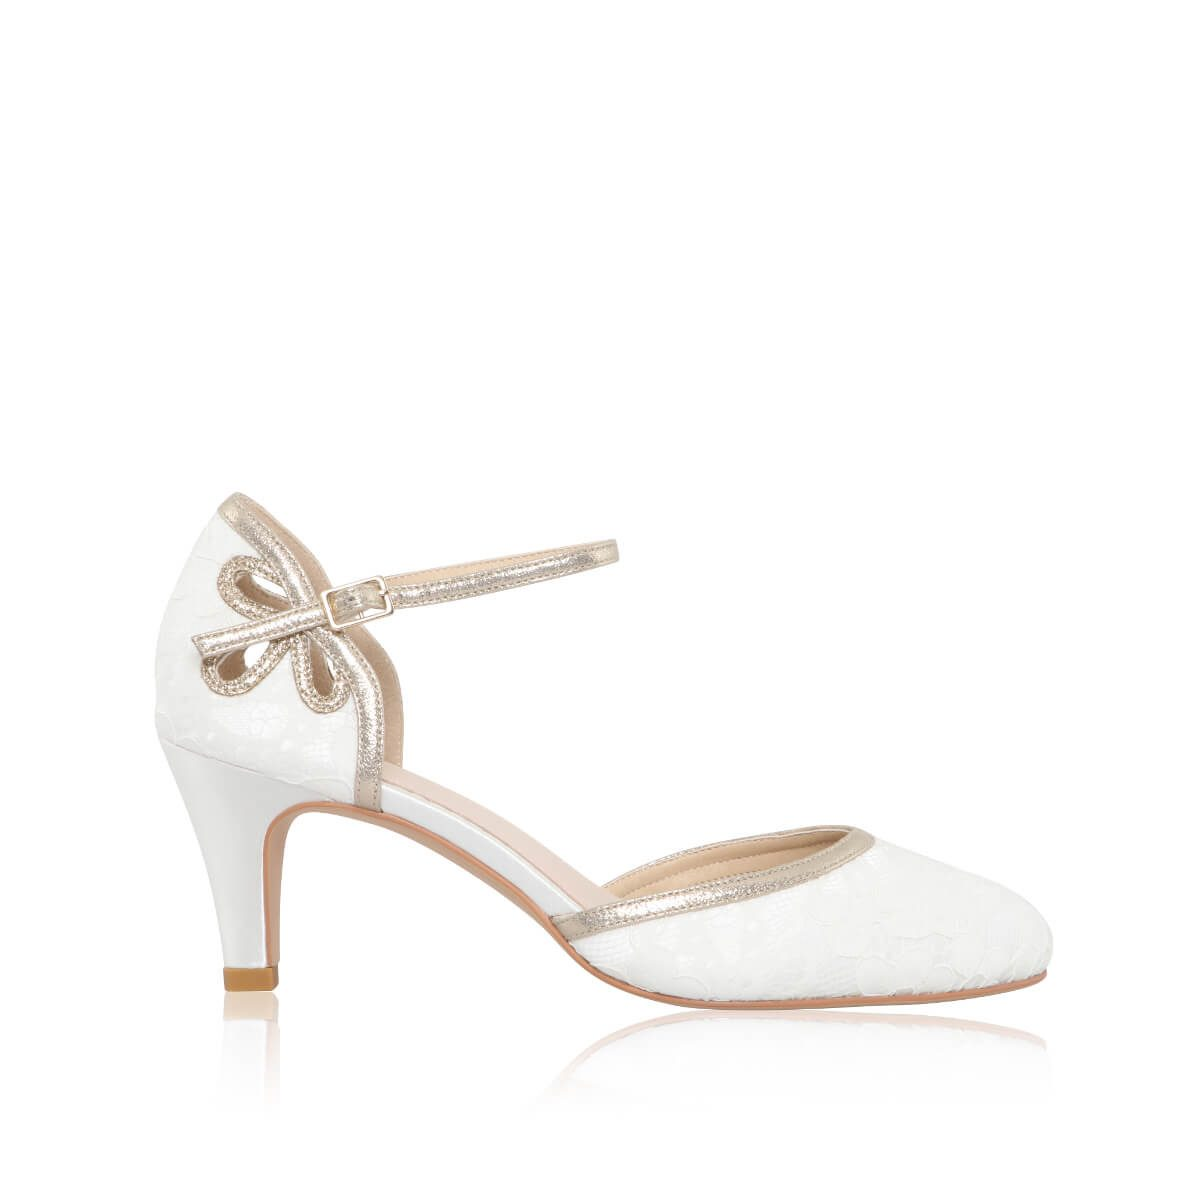 Perfect Bridal Nina Shoes - Ivory Lace/ Gold shimmer 1